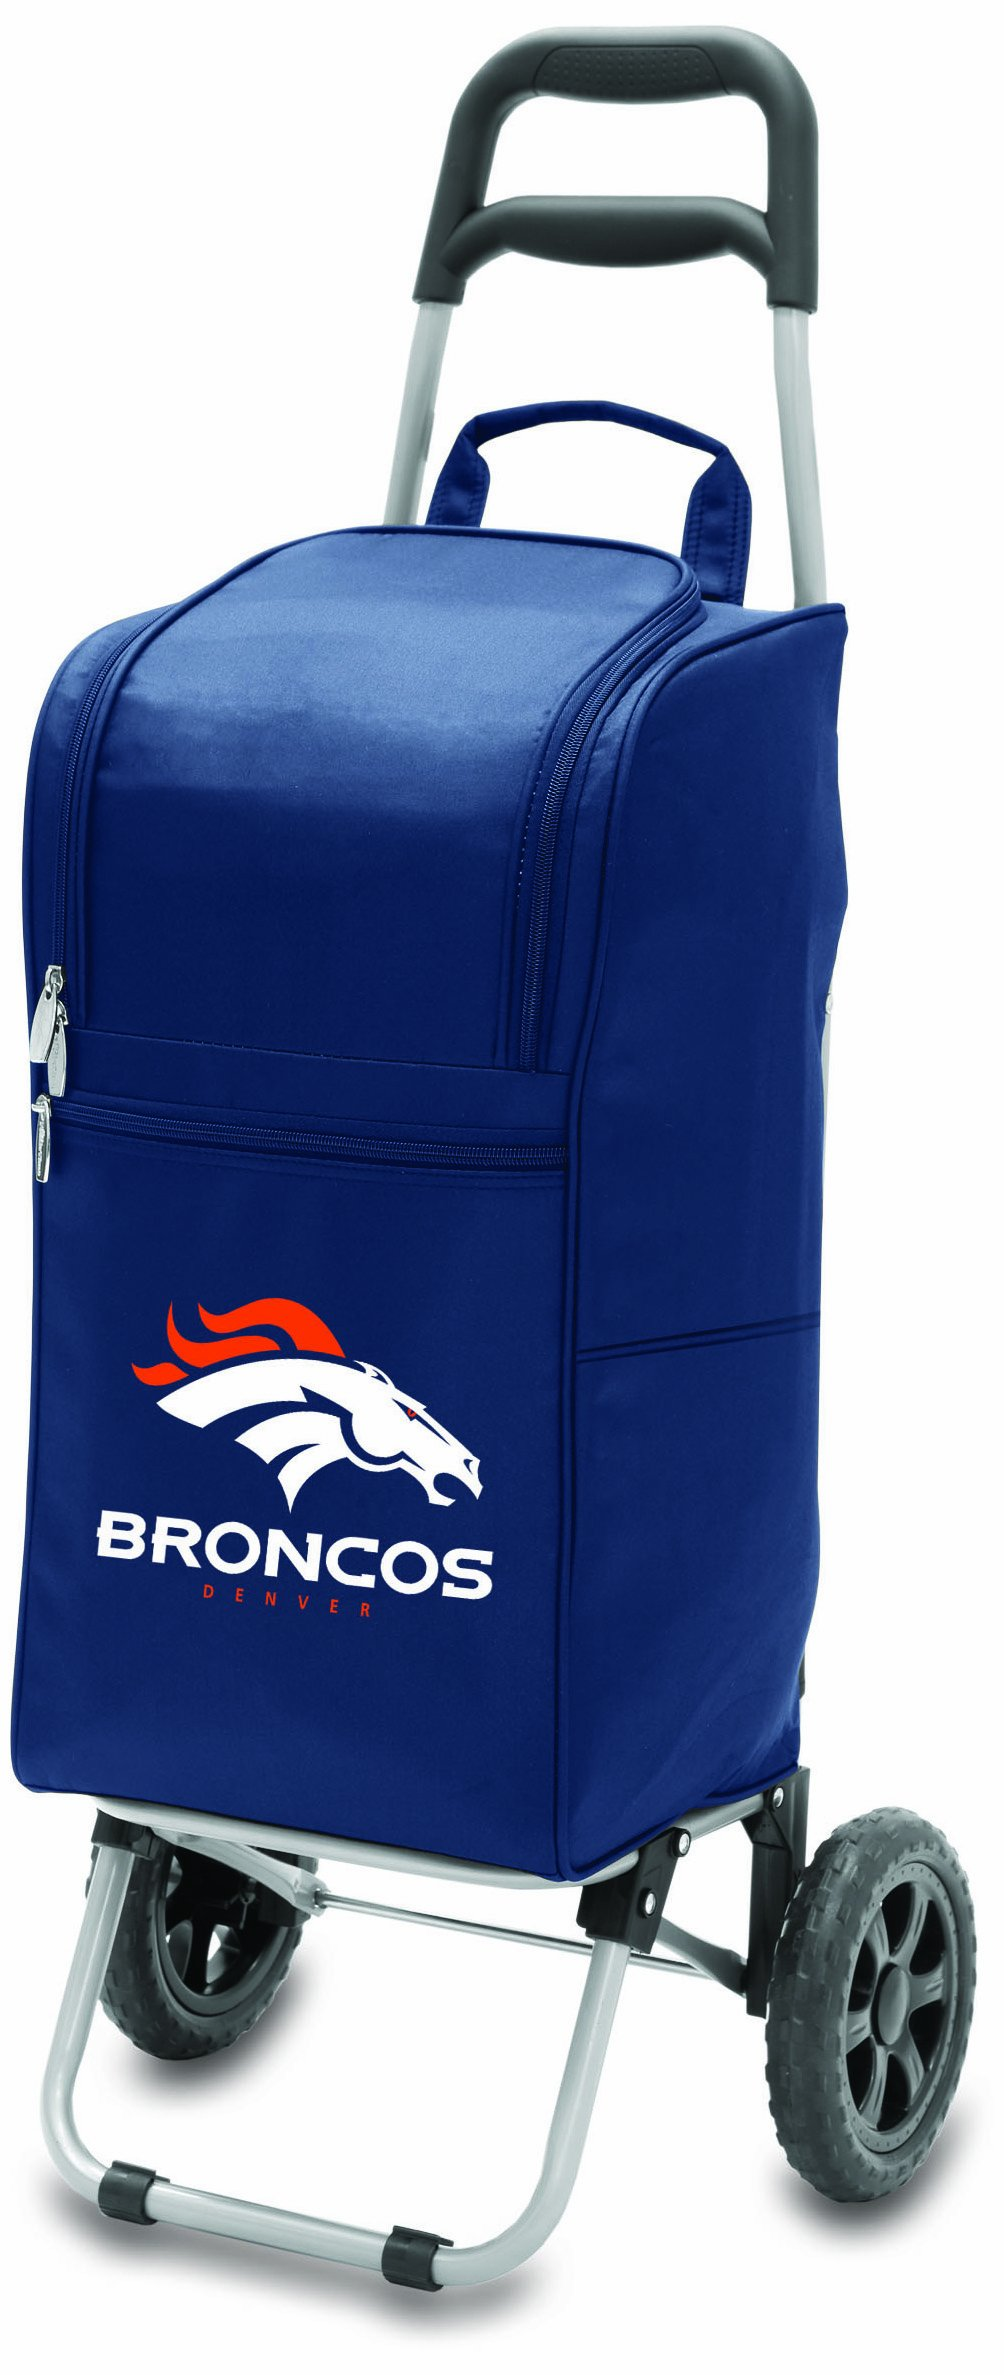 NFL Denver Broncos Insulated Cart Cooler with Wheeled Trolley, Navy